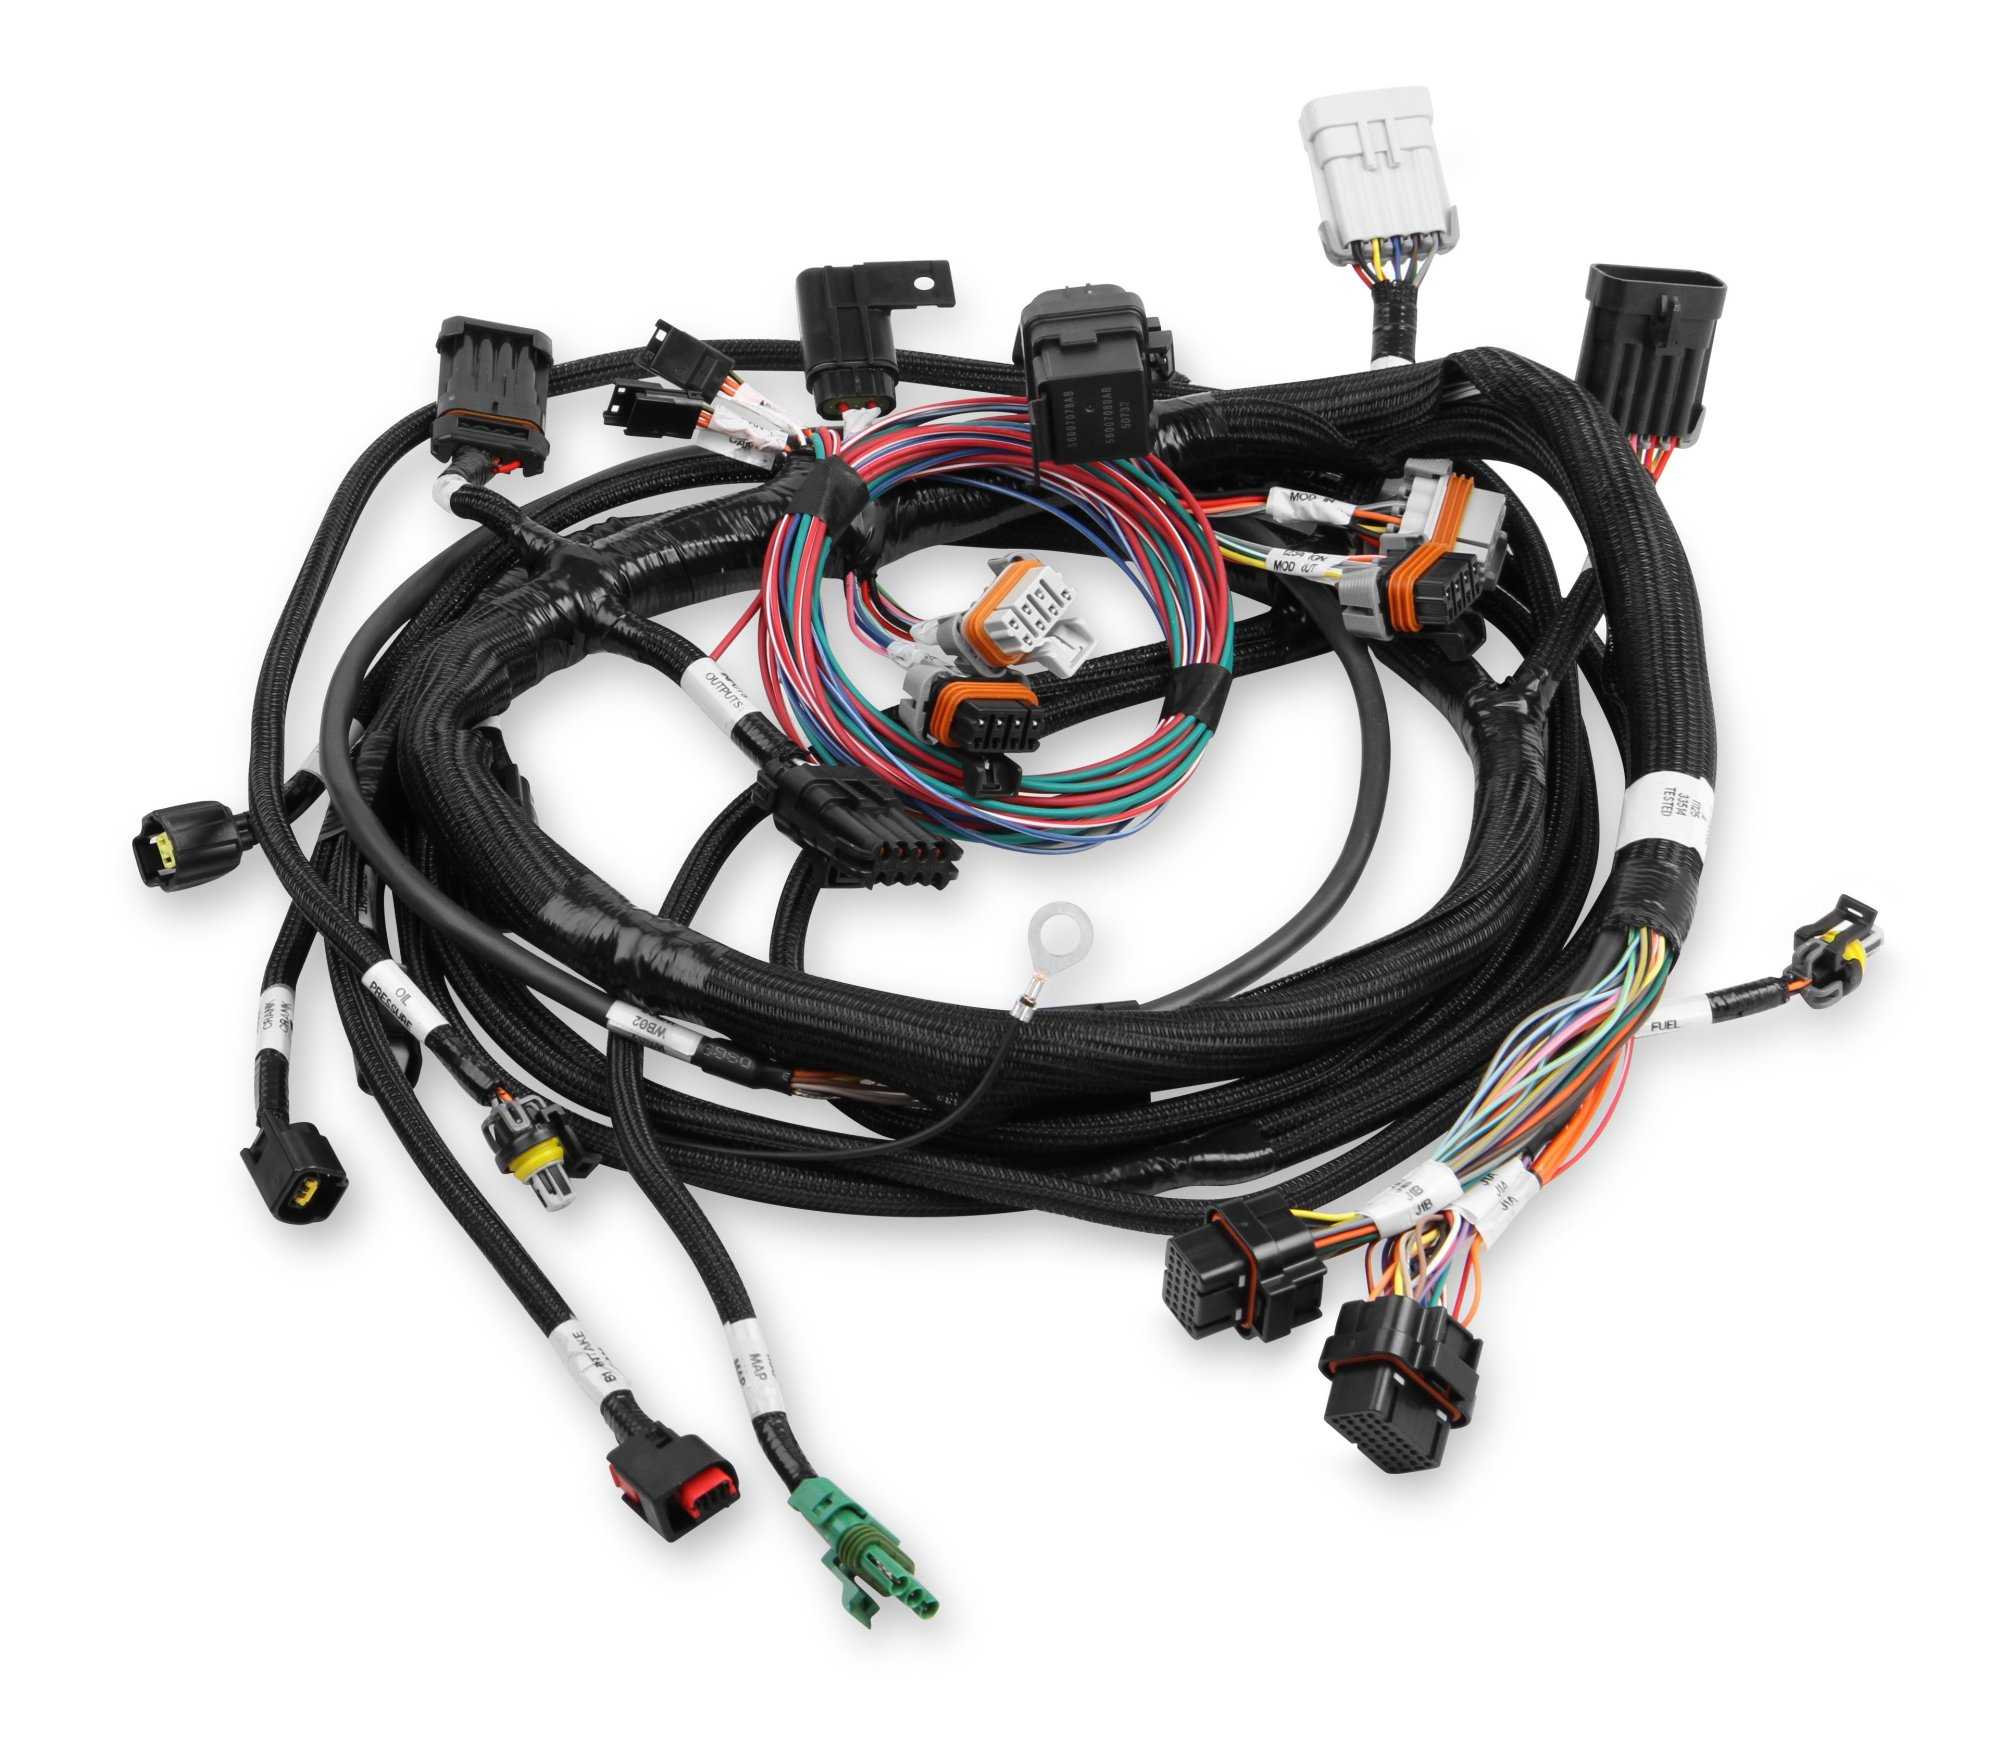 hight resolution of 558 109 ford coyote main harness image